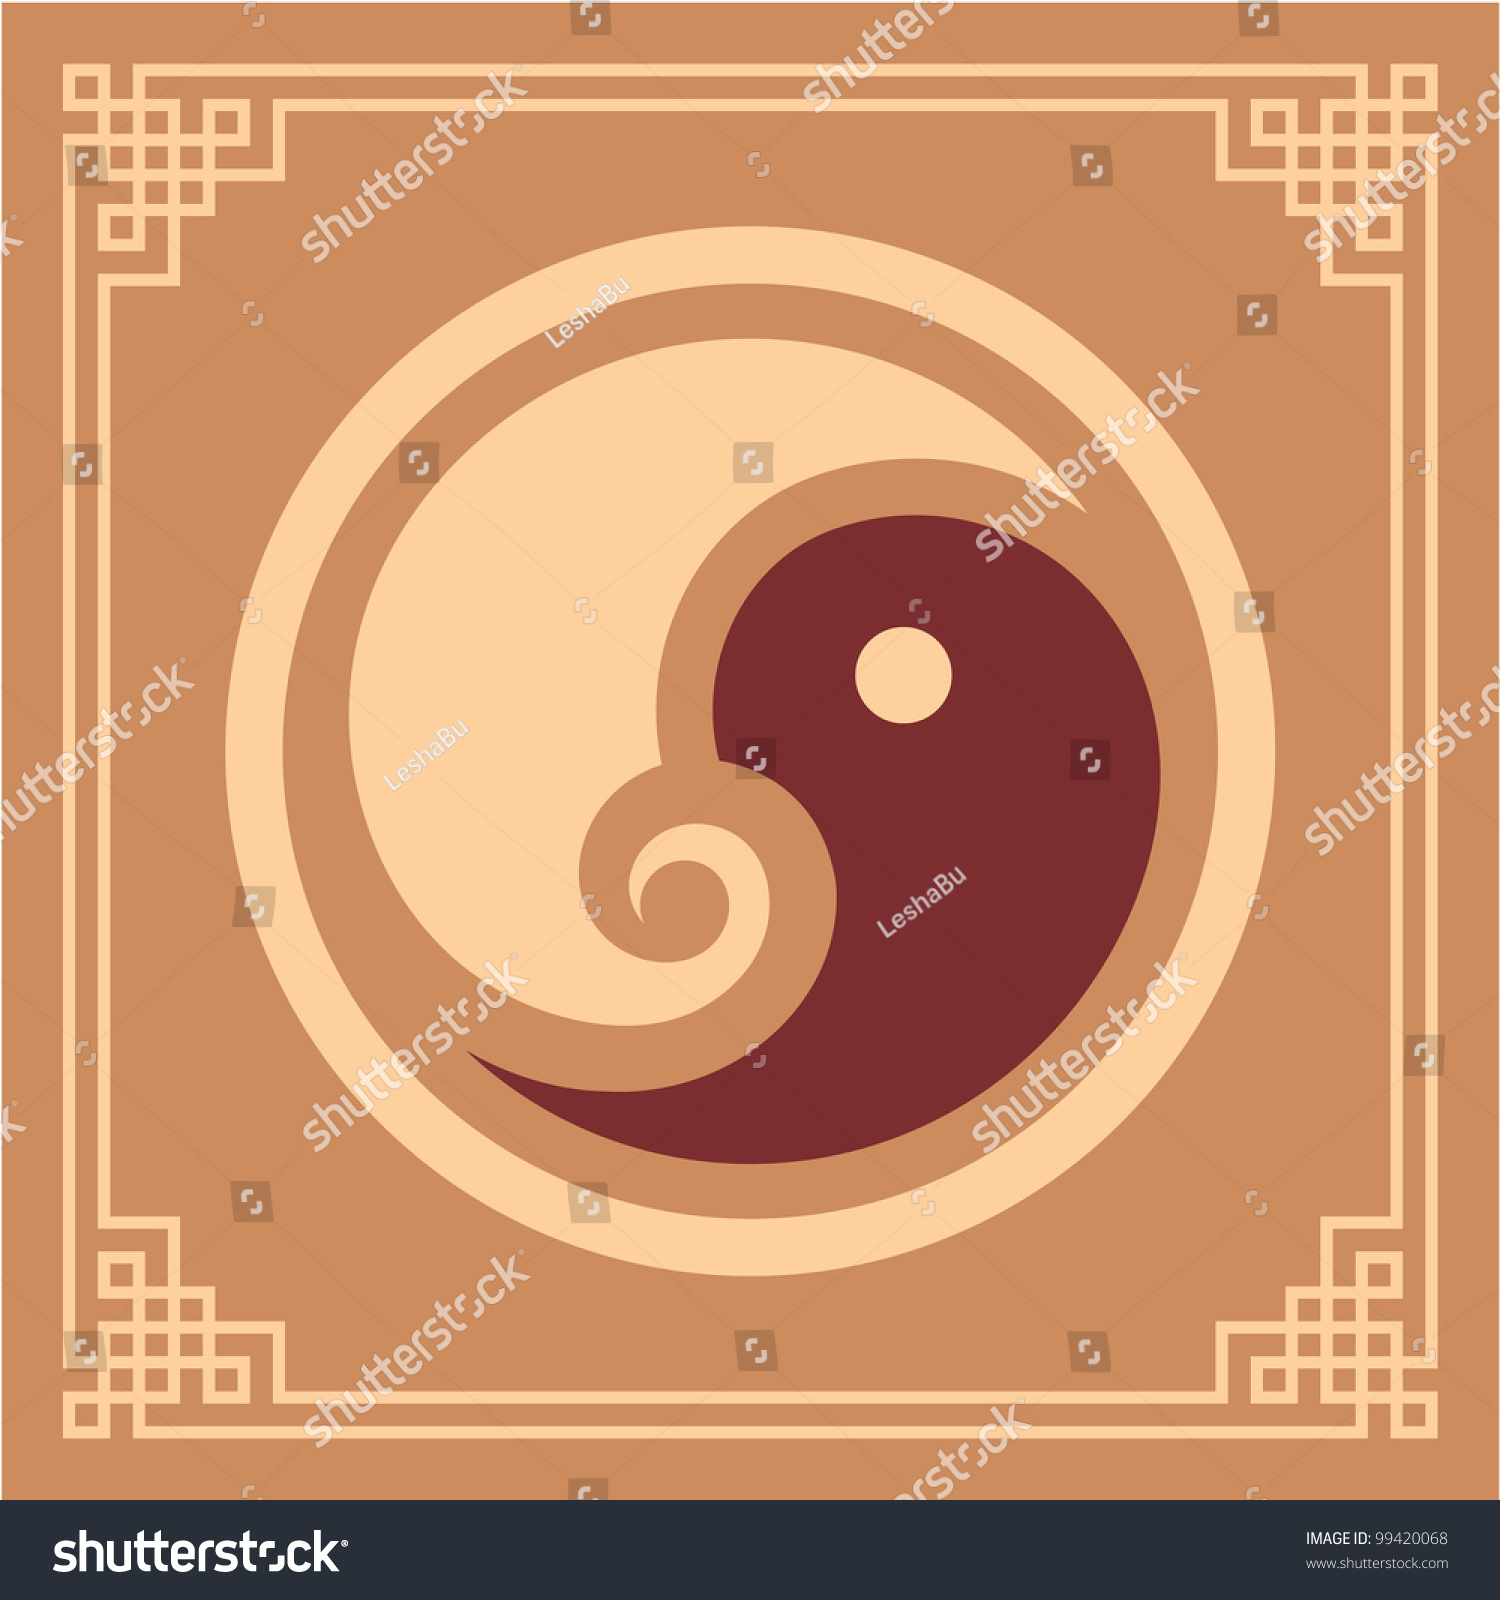 Oriental design element yin yang pattern stock vector for Architecture yin yang